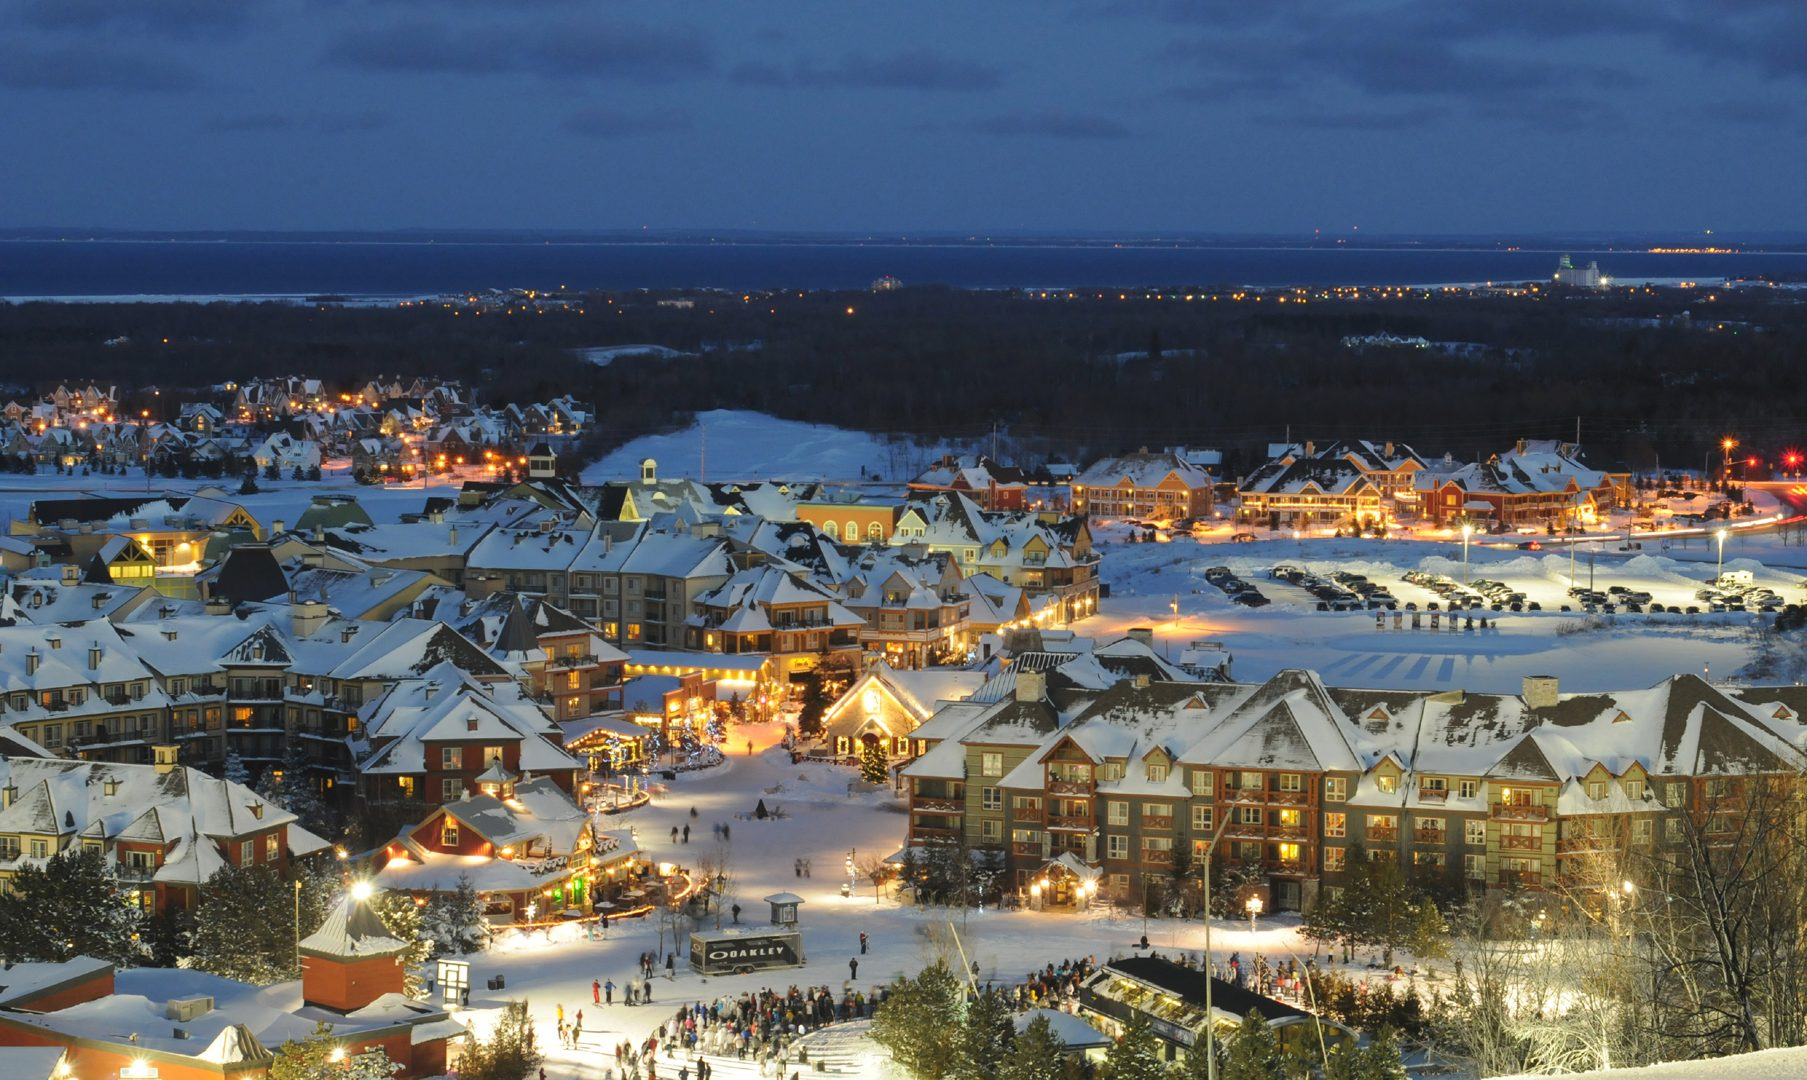 MMG JV Acquires ski resort portfolio for $103M